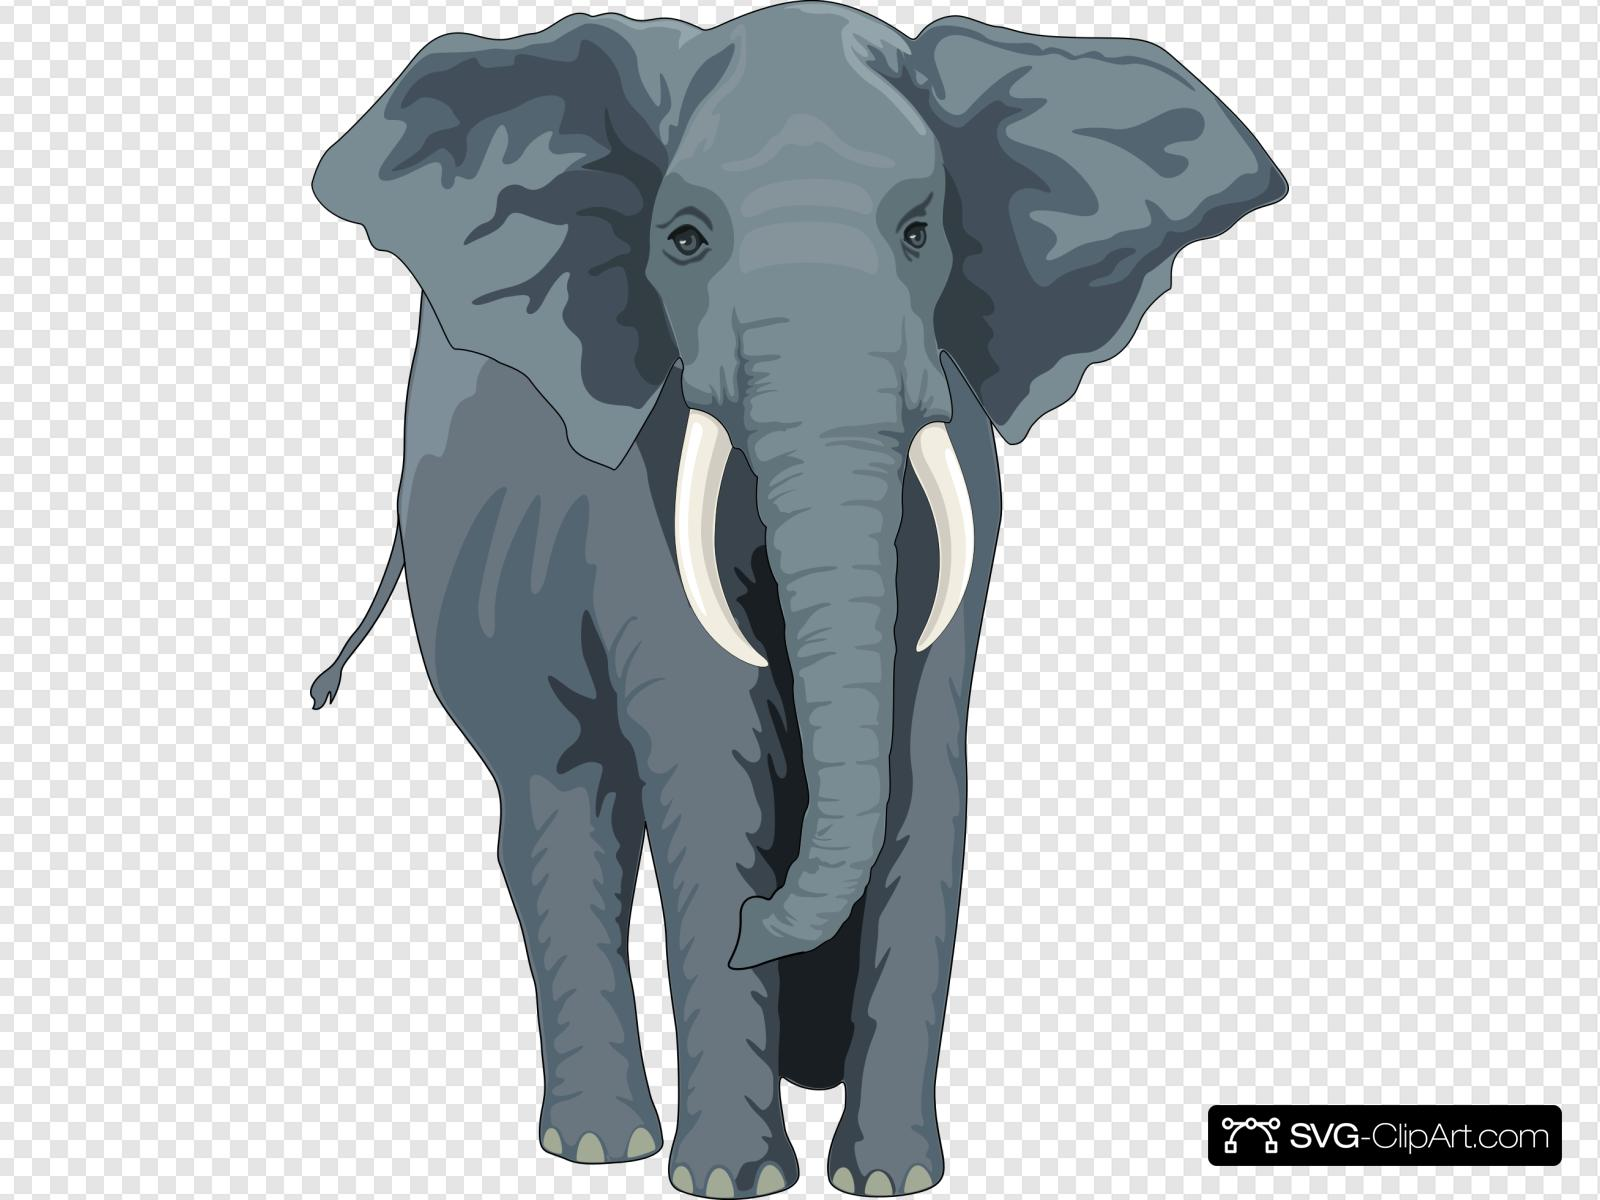 Walking Elephant Front View Clip art, Icon and SVG.